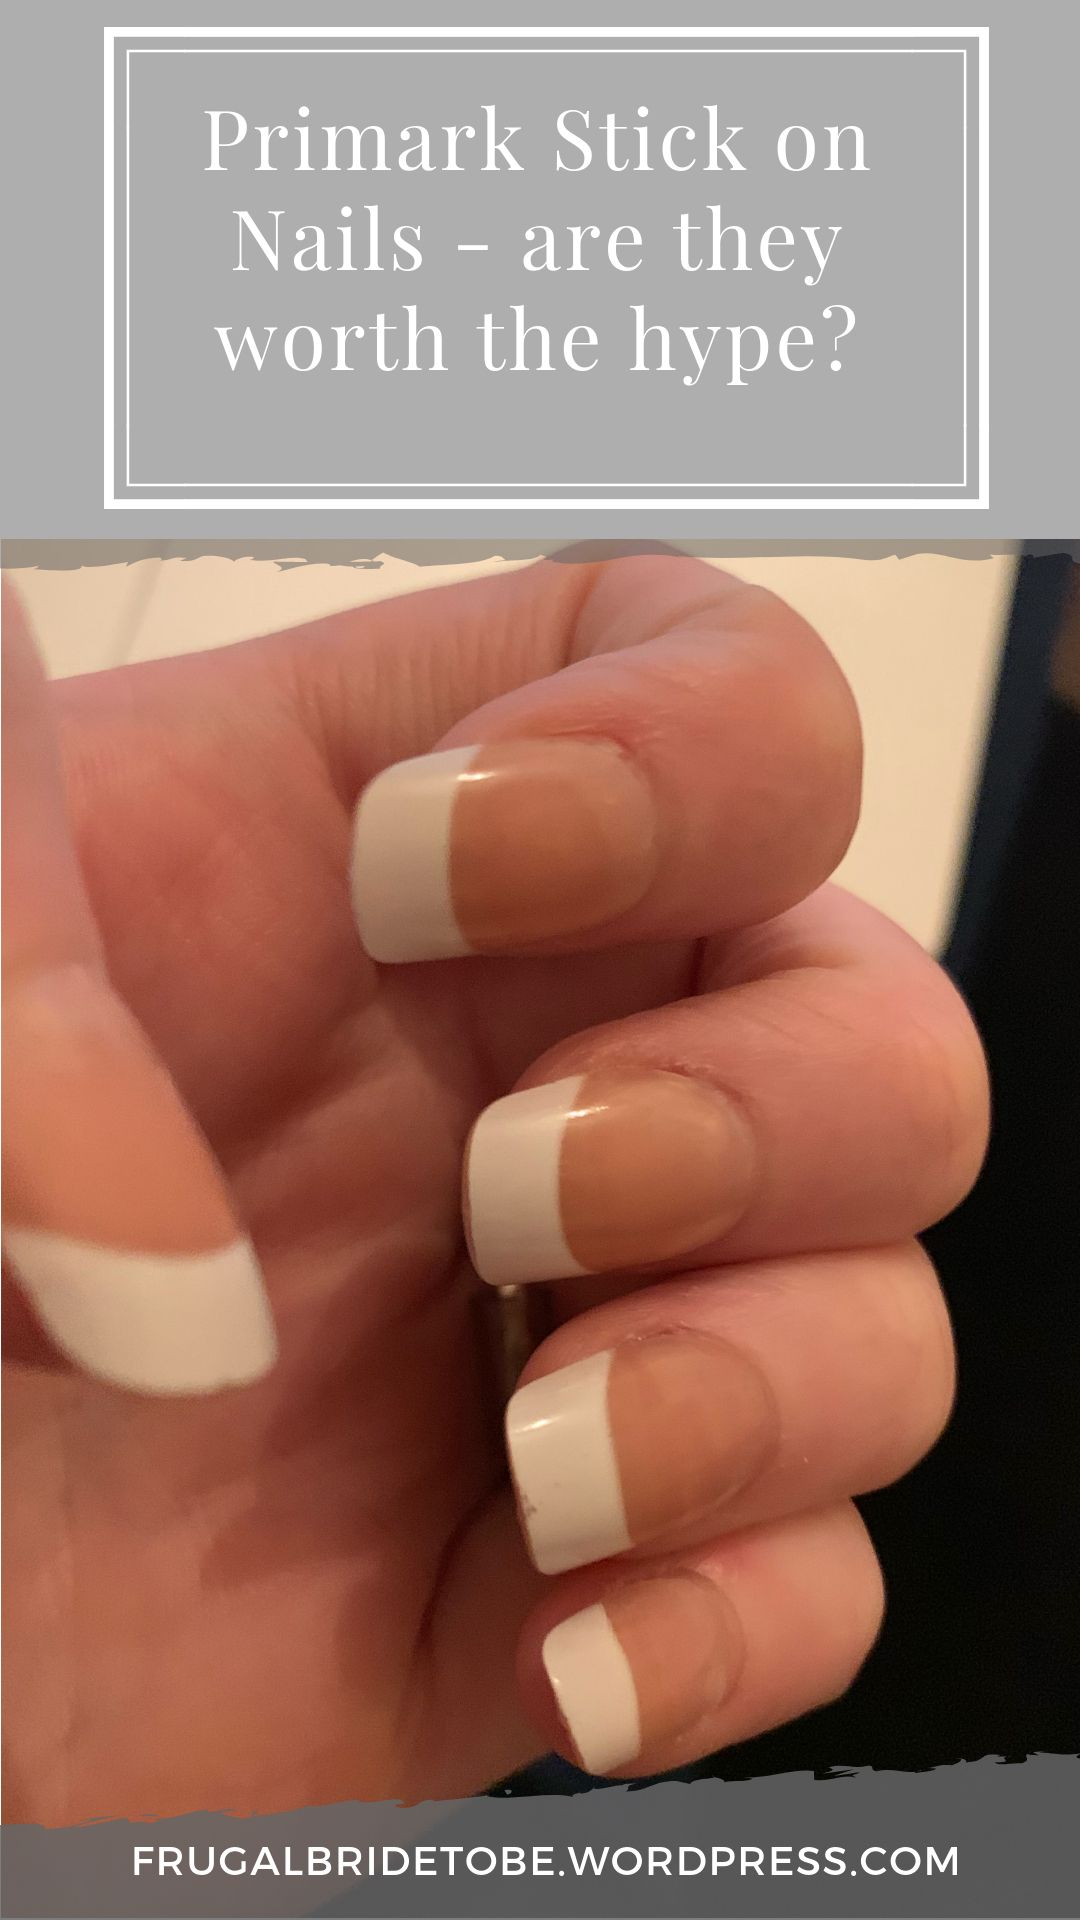 Primark 1 False Nails Are They Worth The Bargain Price Tag False Nails Stick On Nails Nails